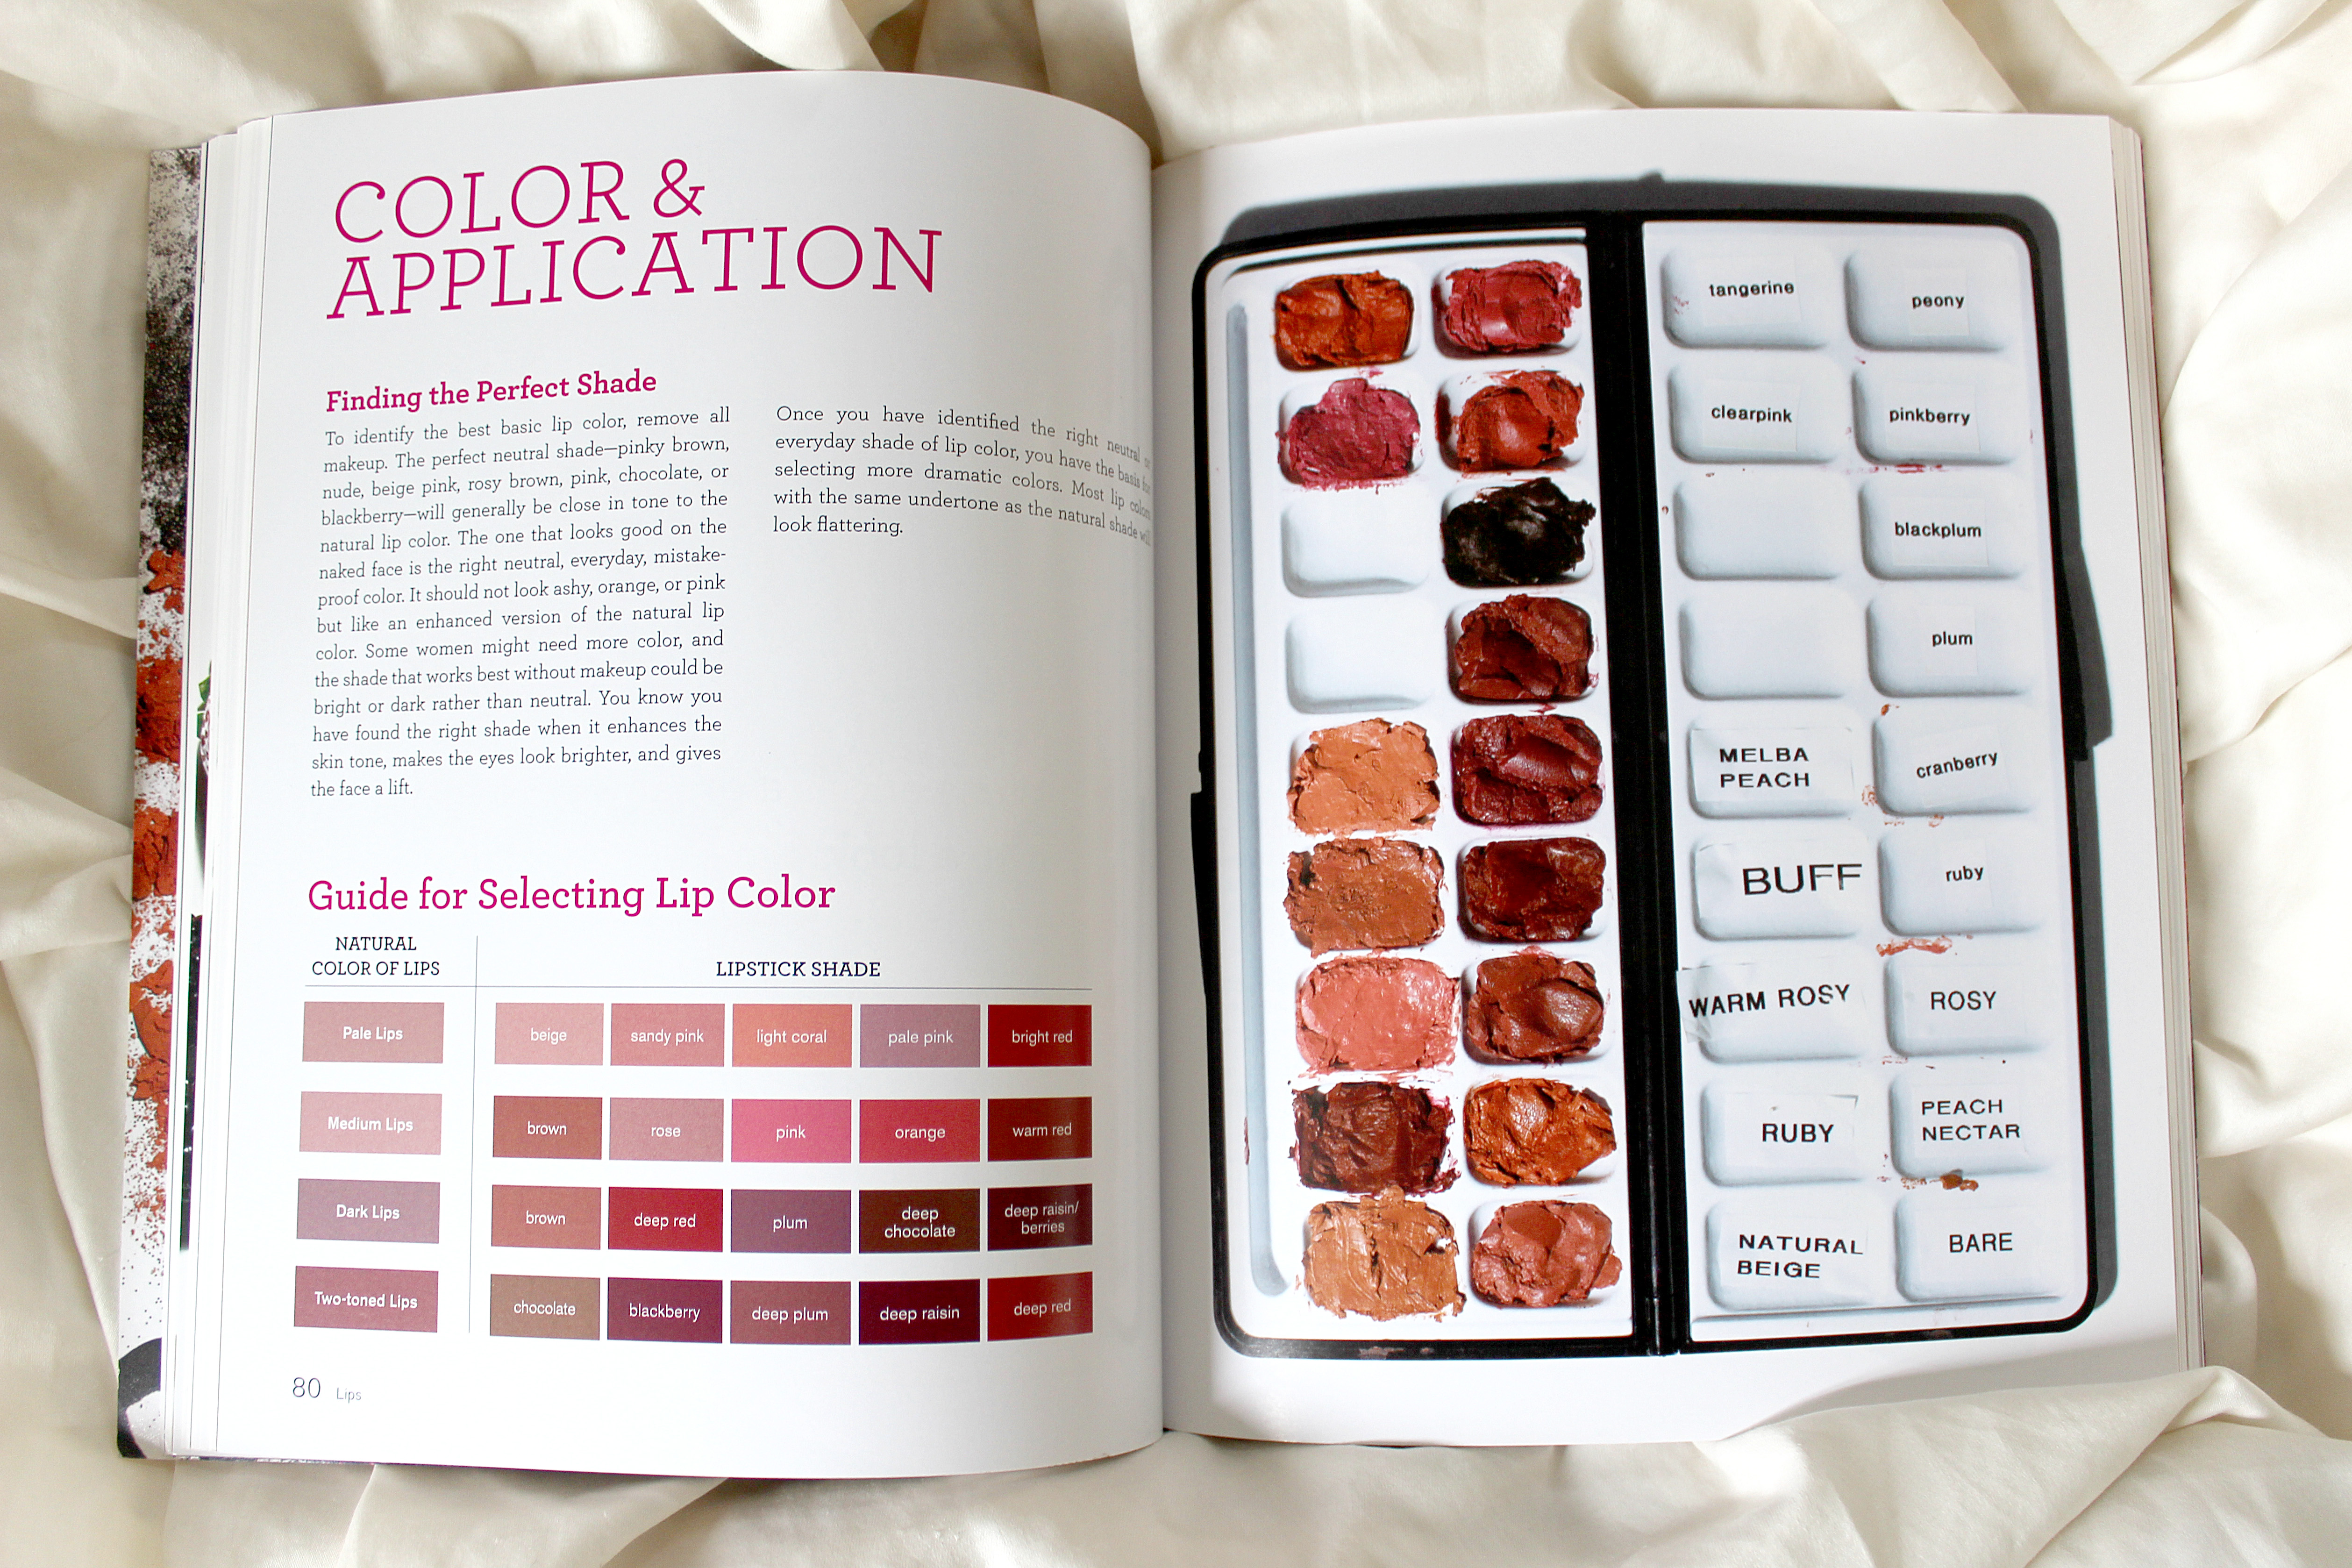 Bobbi Brown Makeup Tutorial Book Makewalls Co